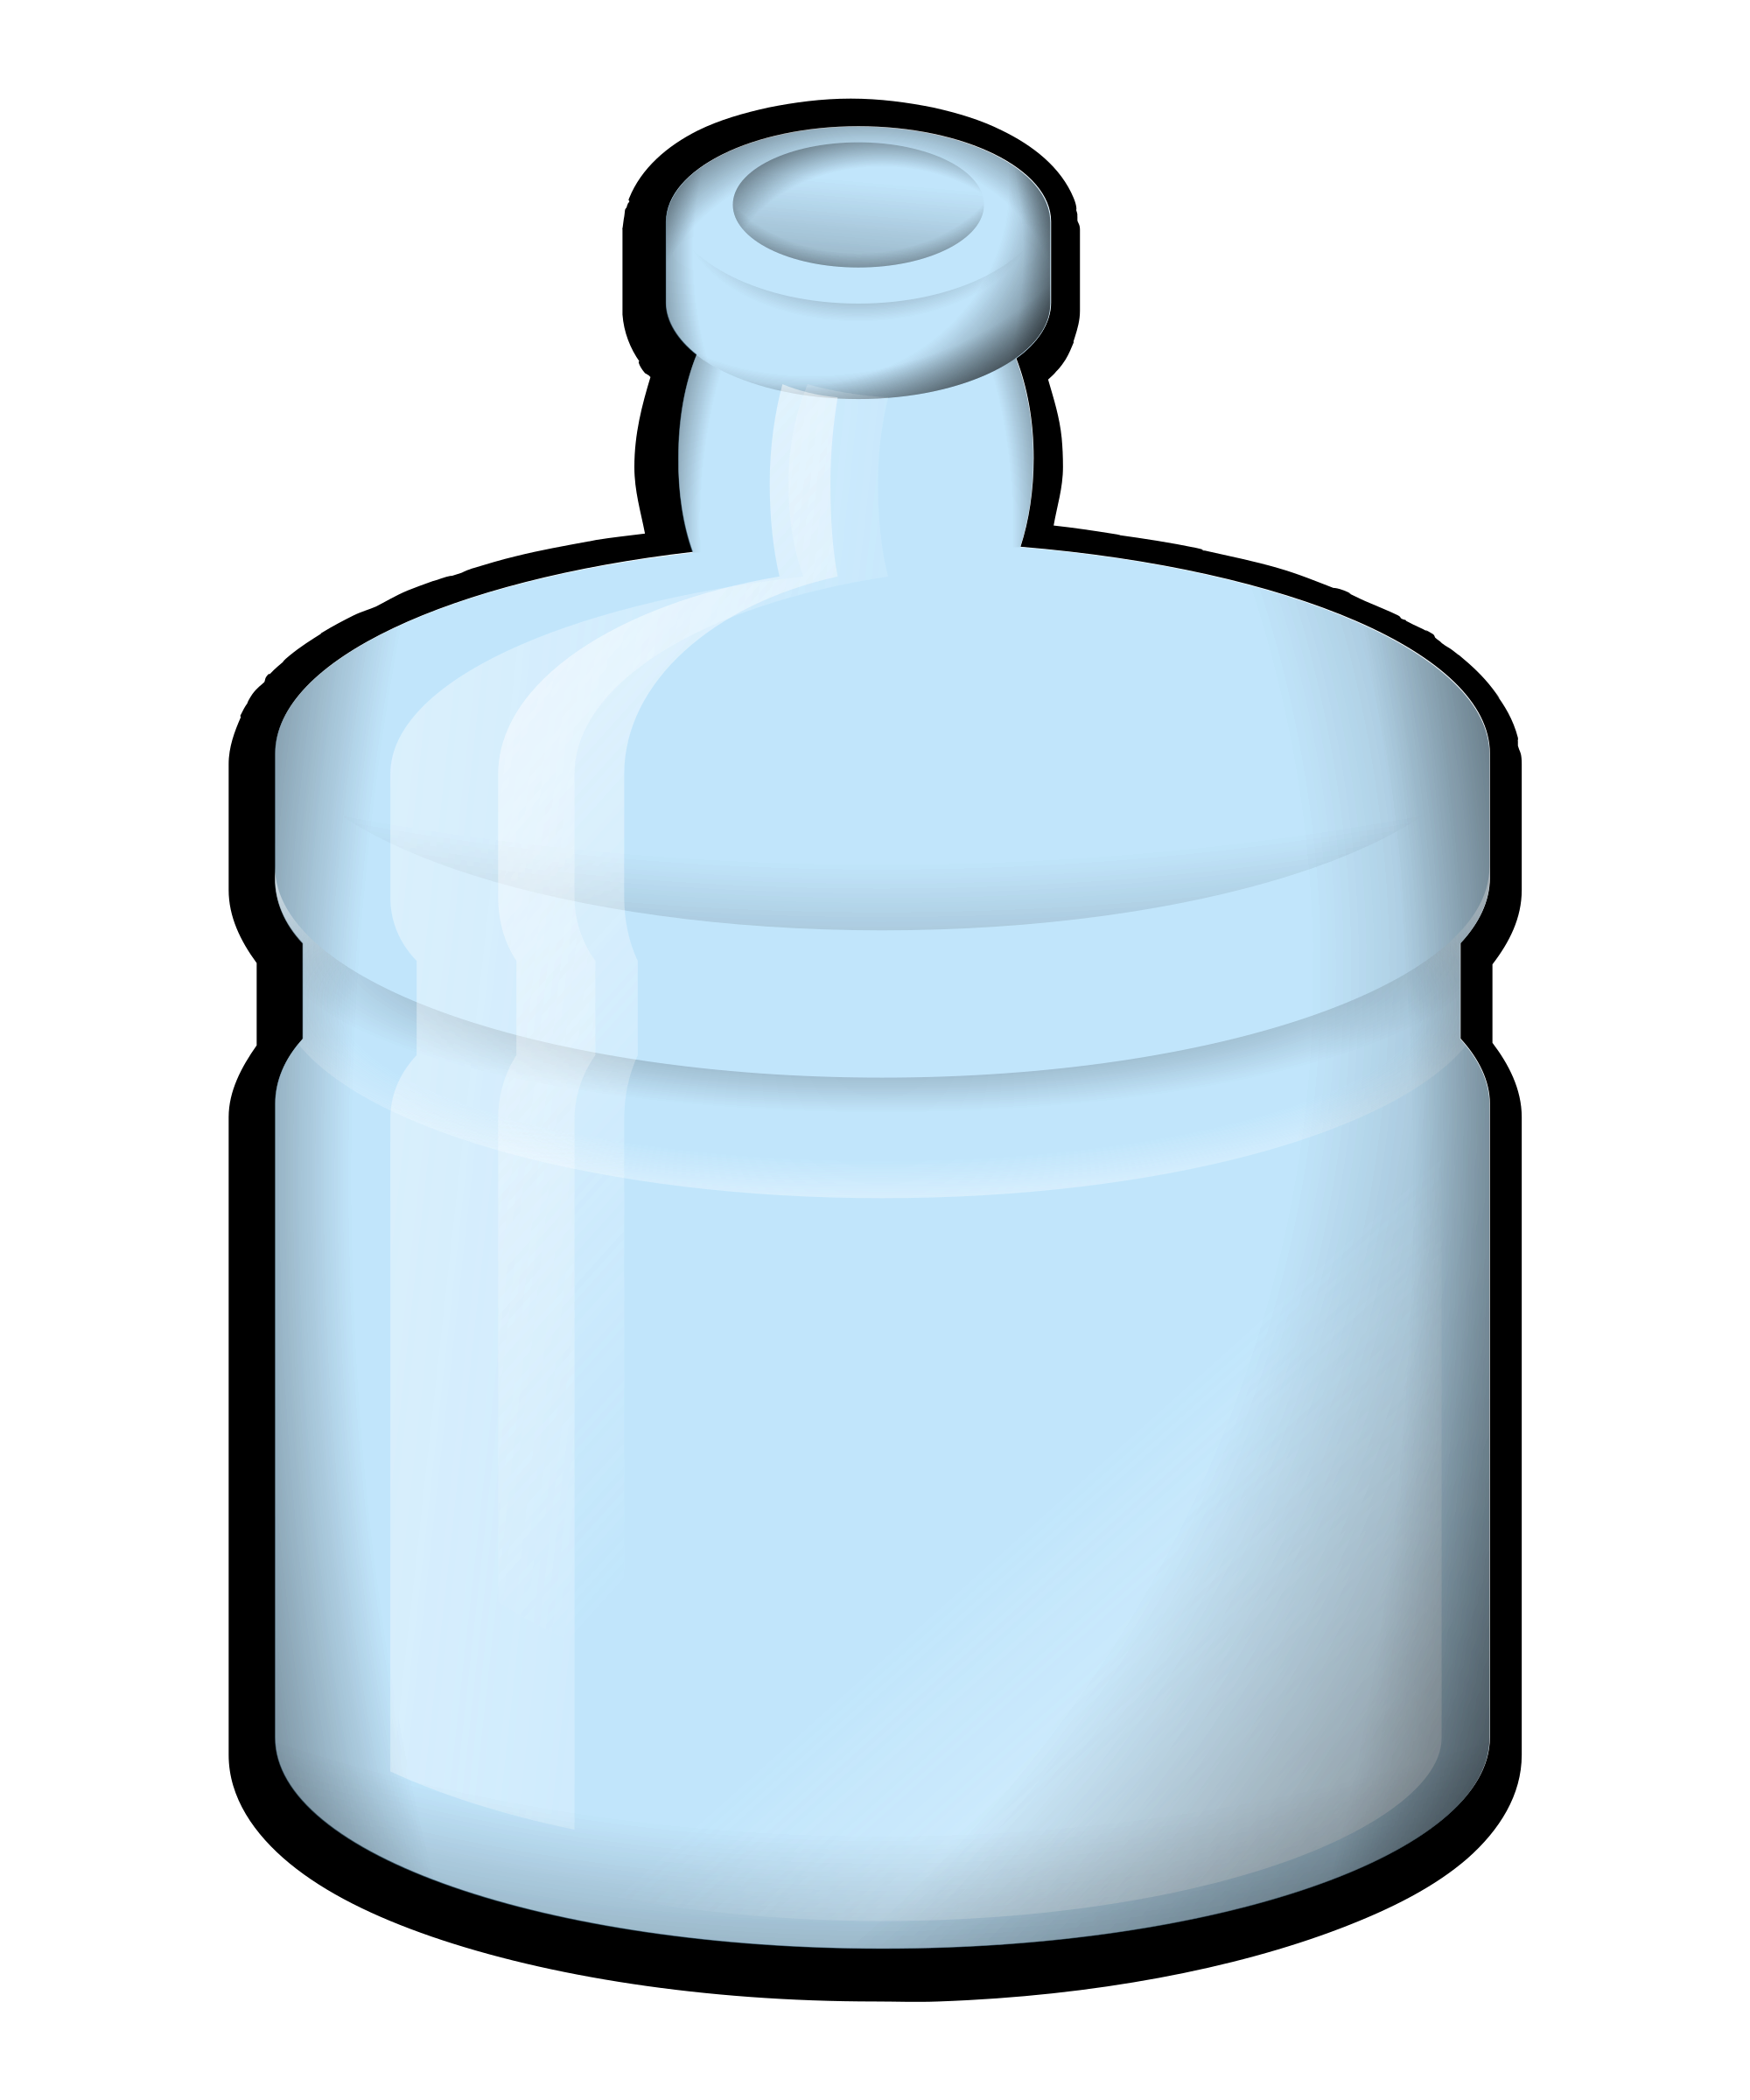 2000x2400 Excellent Ideas Clip Art Water Bottle Bottled Vector Pure Png